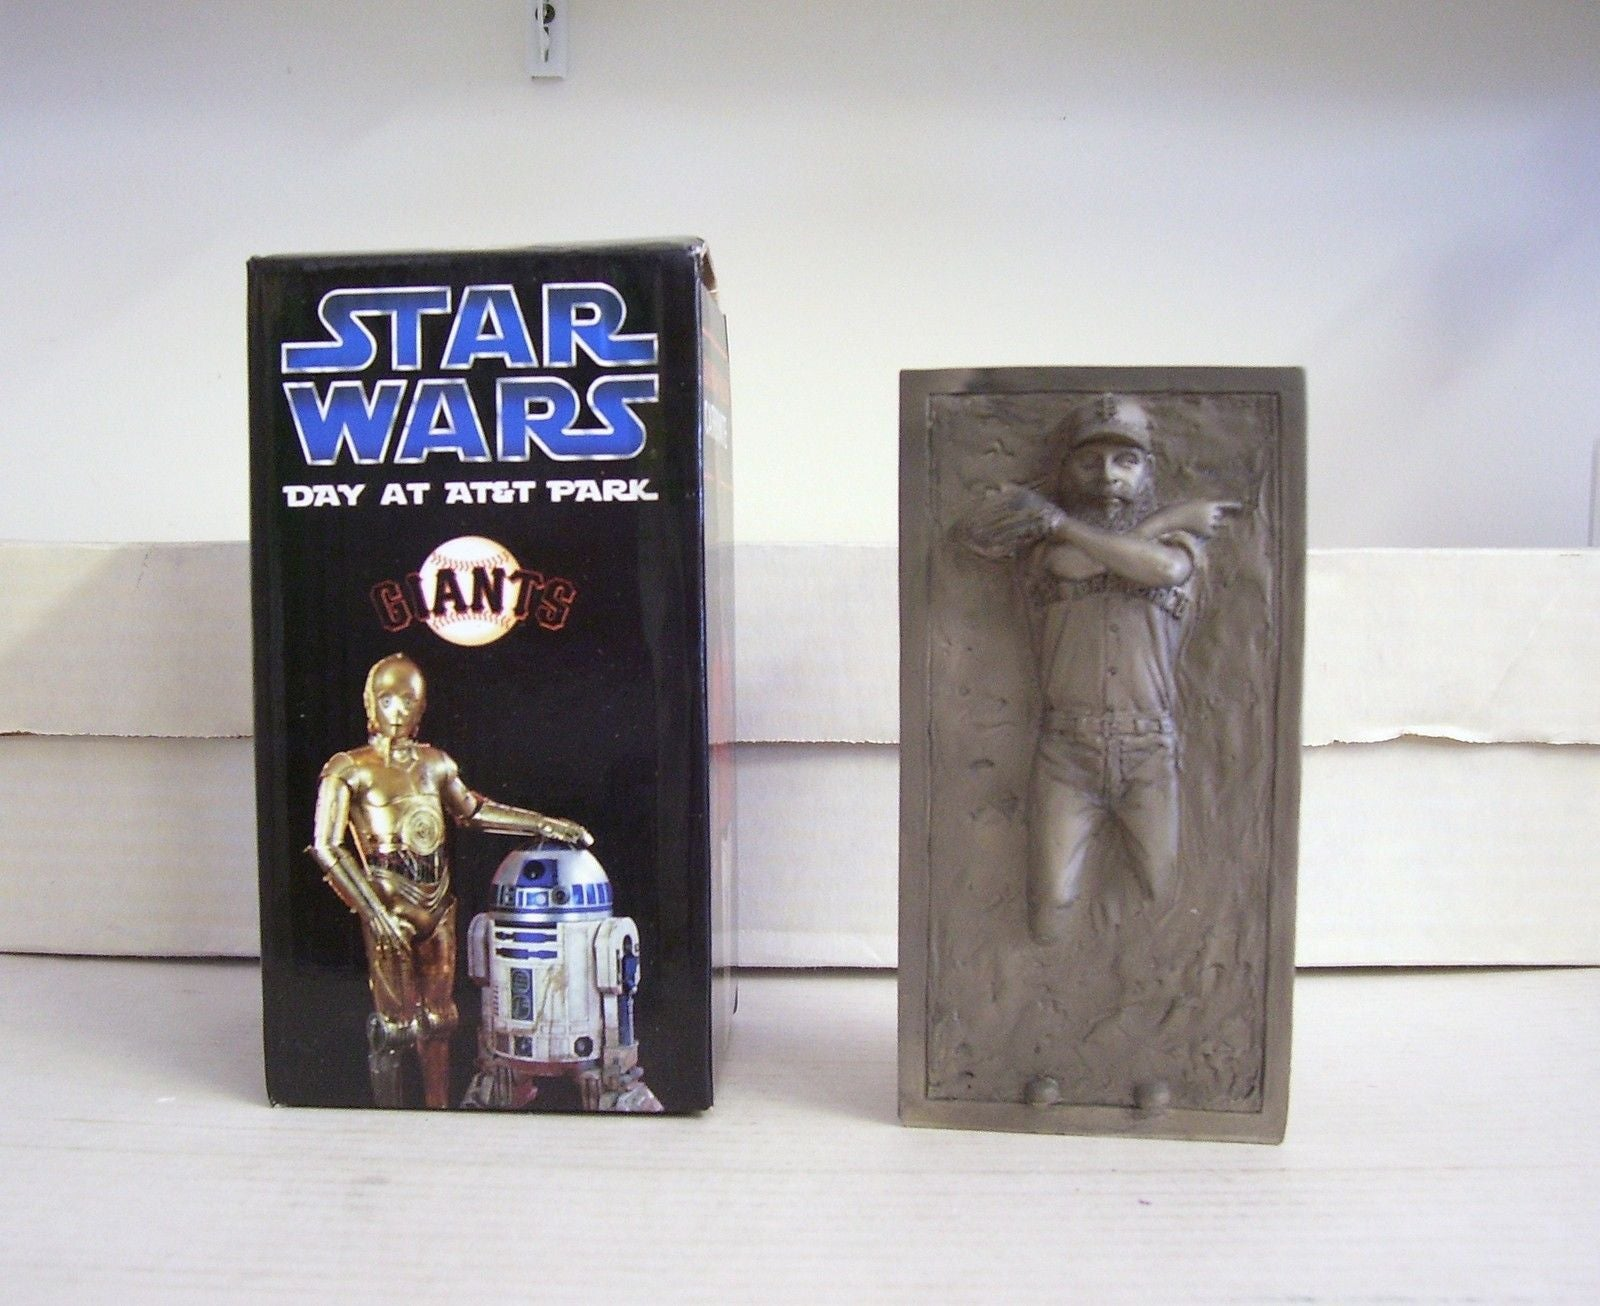 Brian Wilson Han Solo Carbonite Star Wars Statue San Francisco Giants Bobblehead